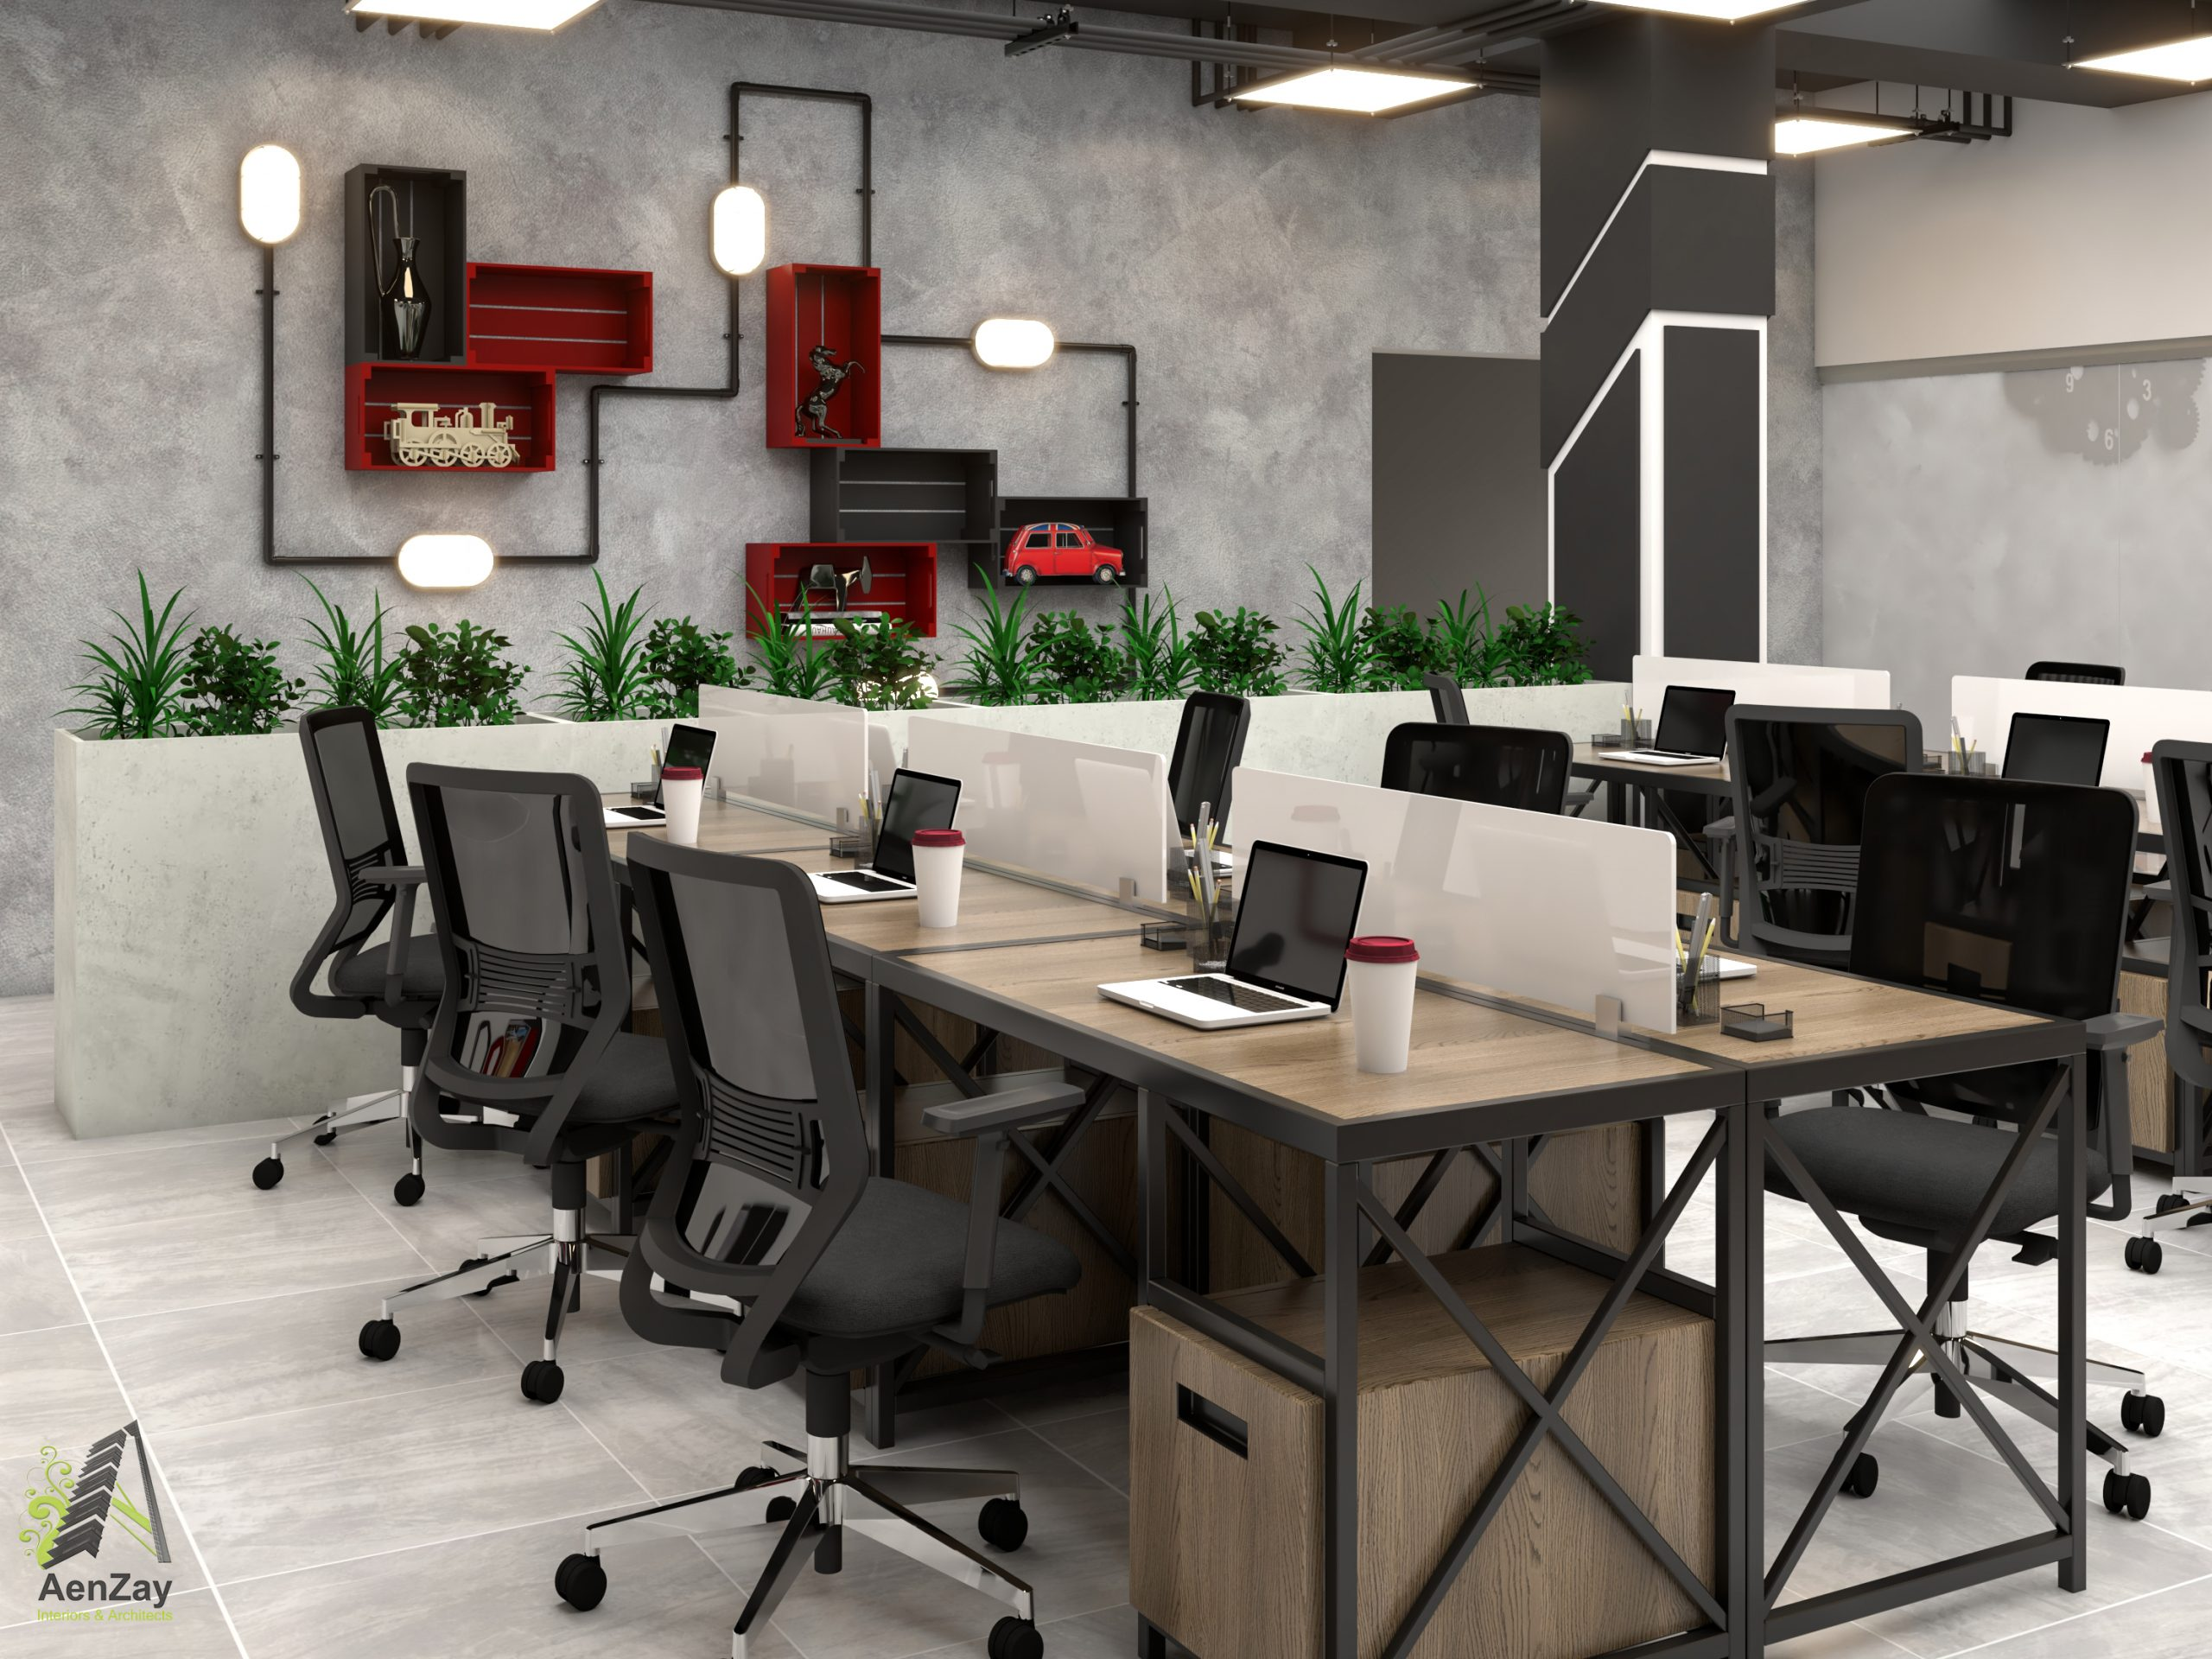 interior design corporate projects Workstation greenery